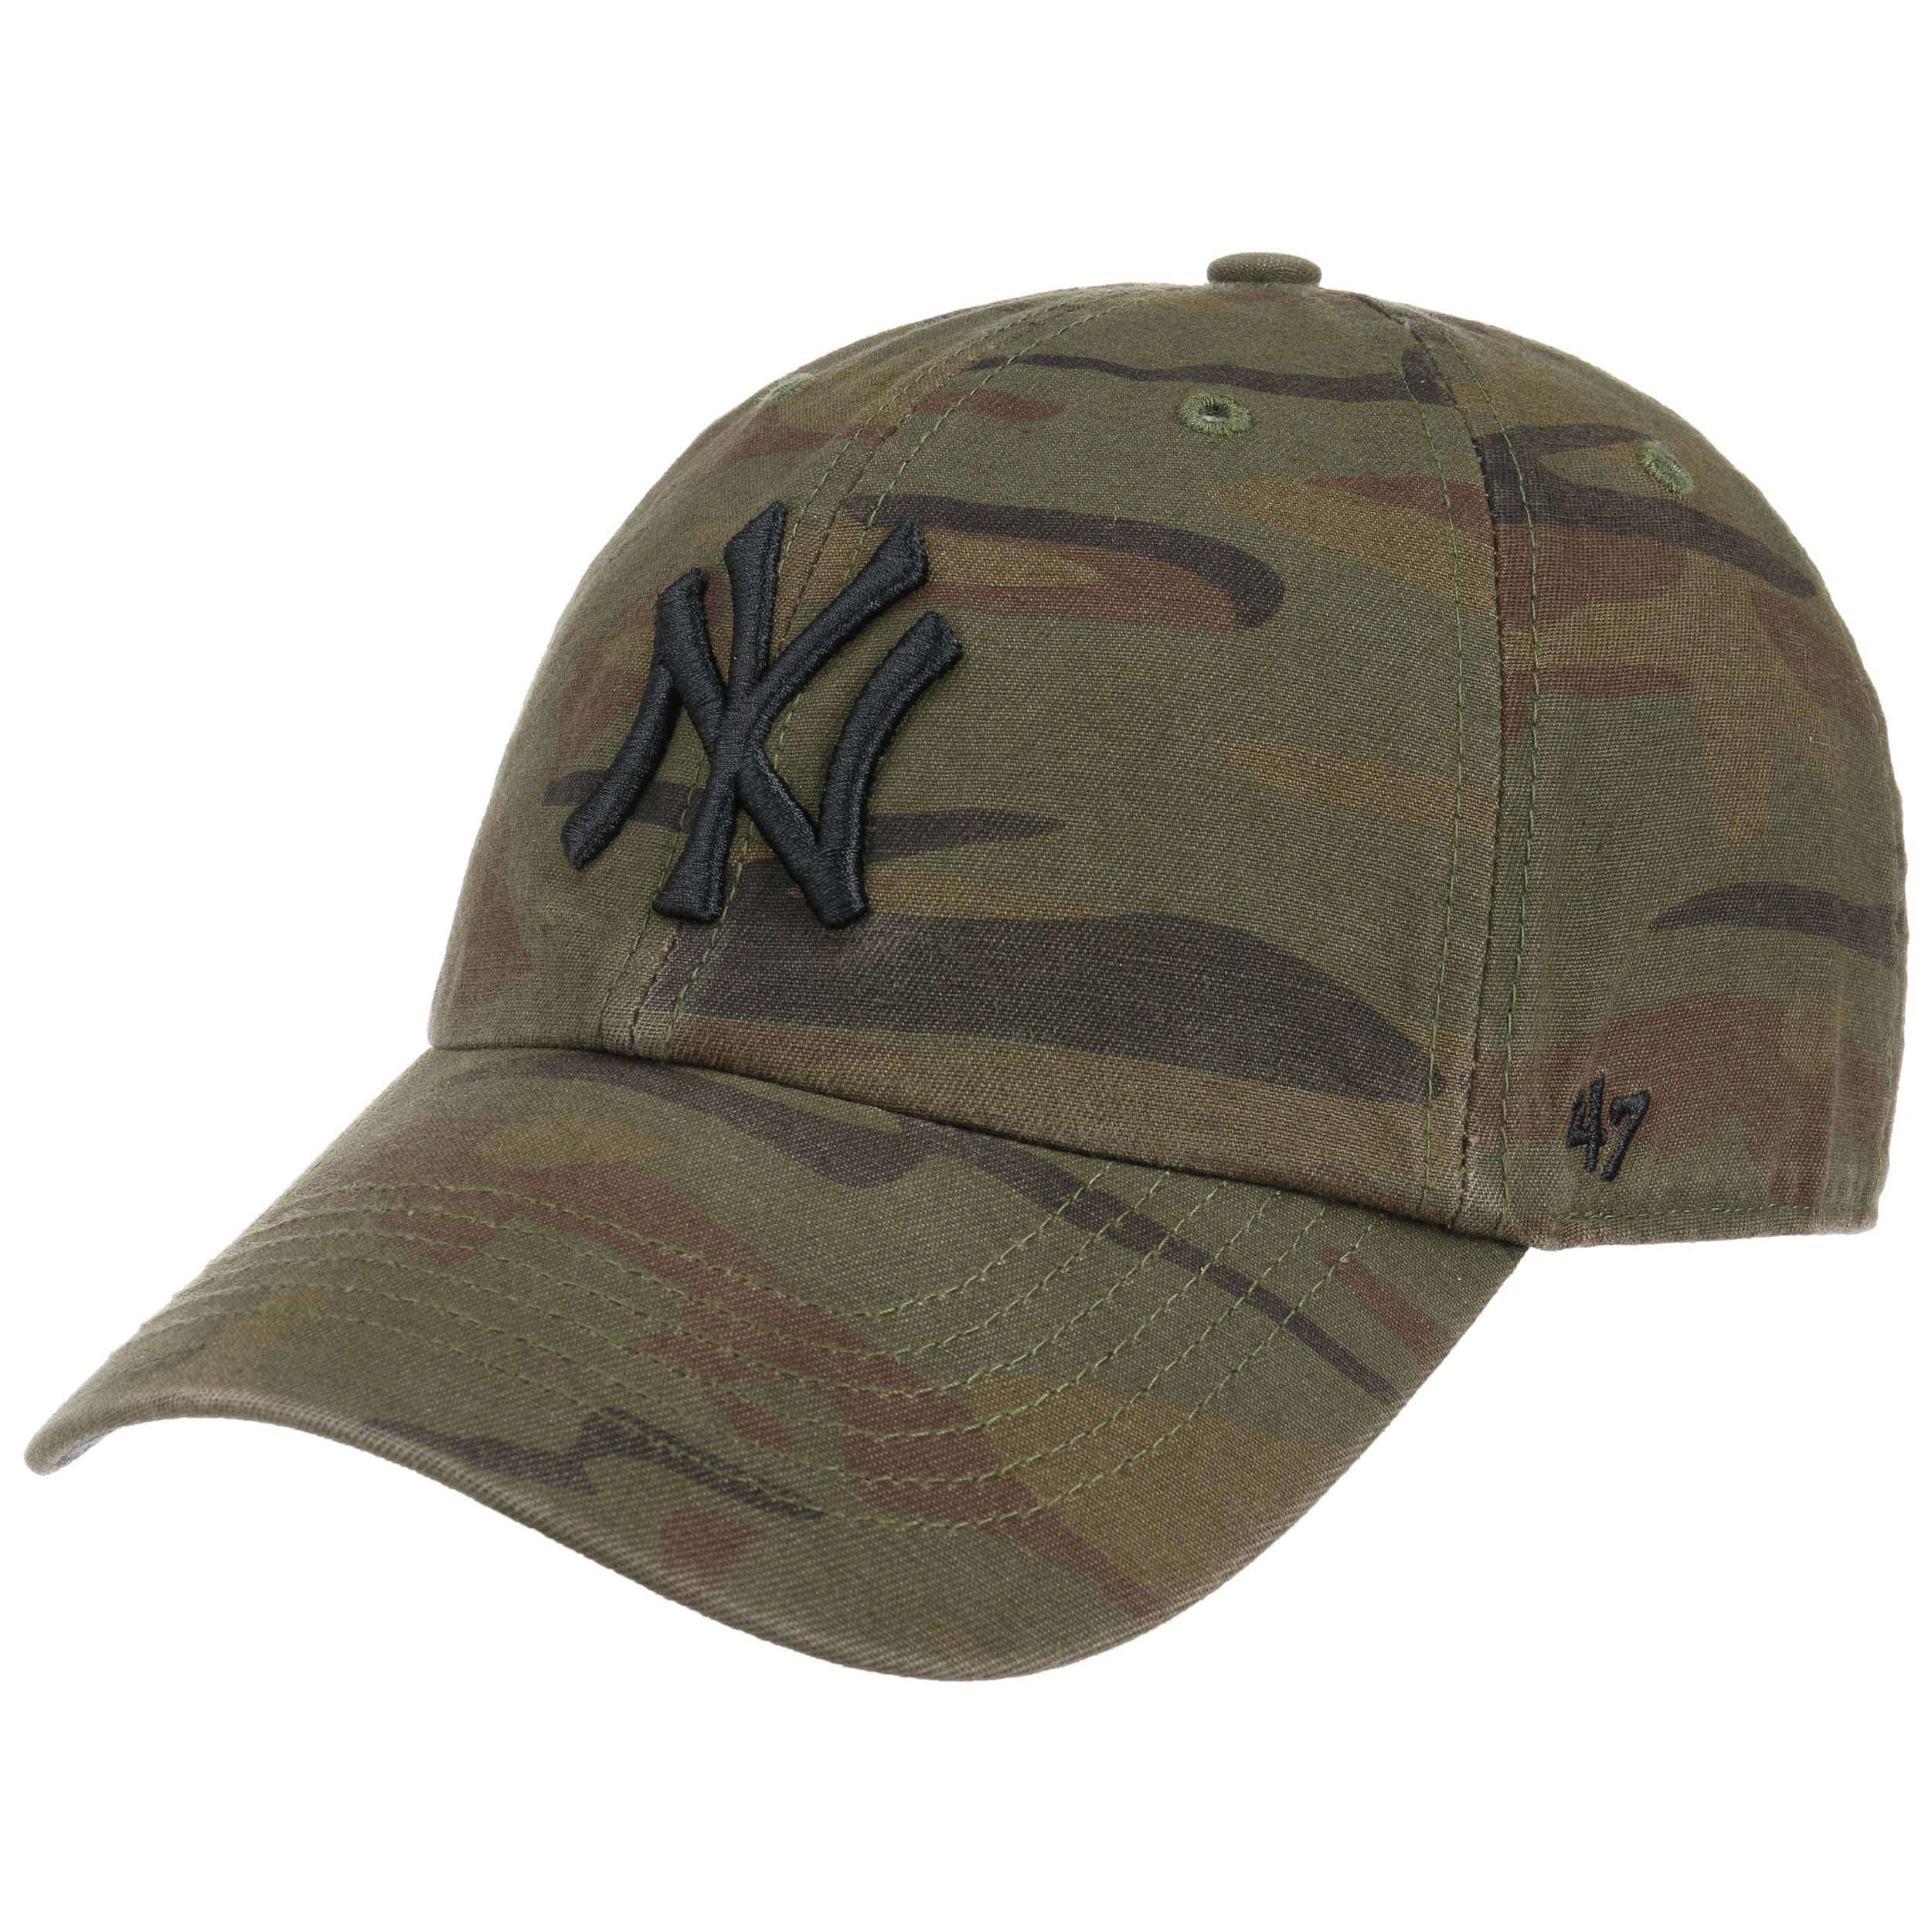 66b5944700a ... Clean Up Regiment Yankees Cap by 47 Brand - camouflage 6